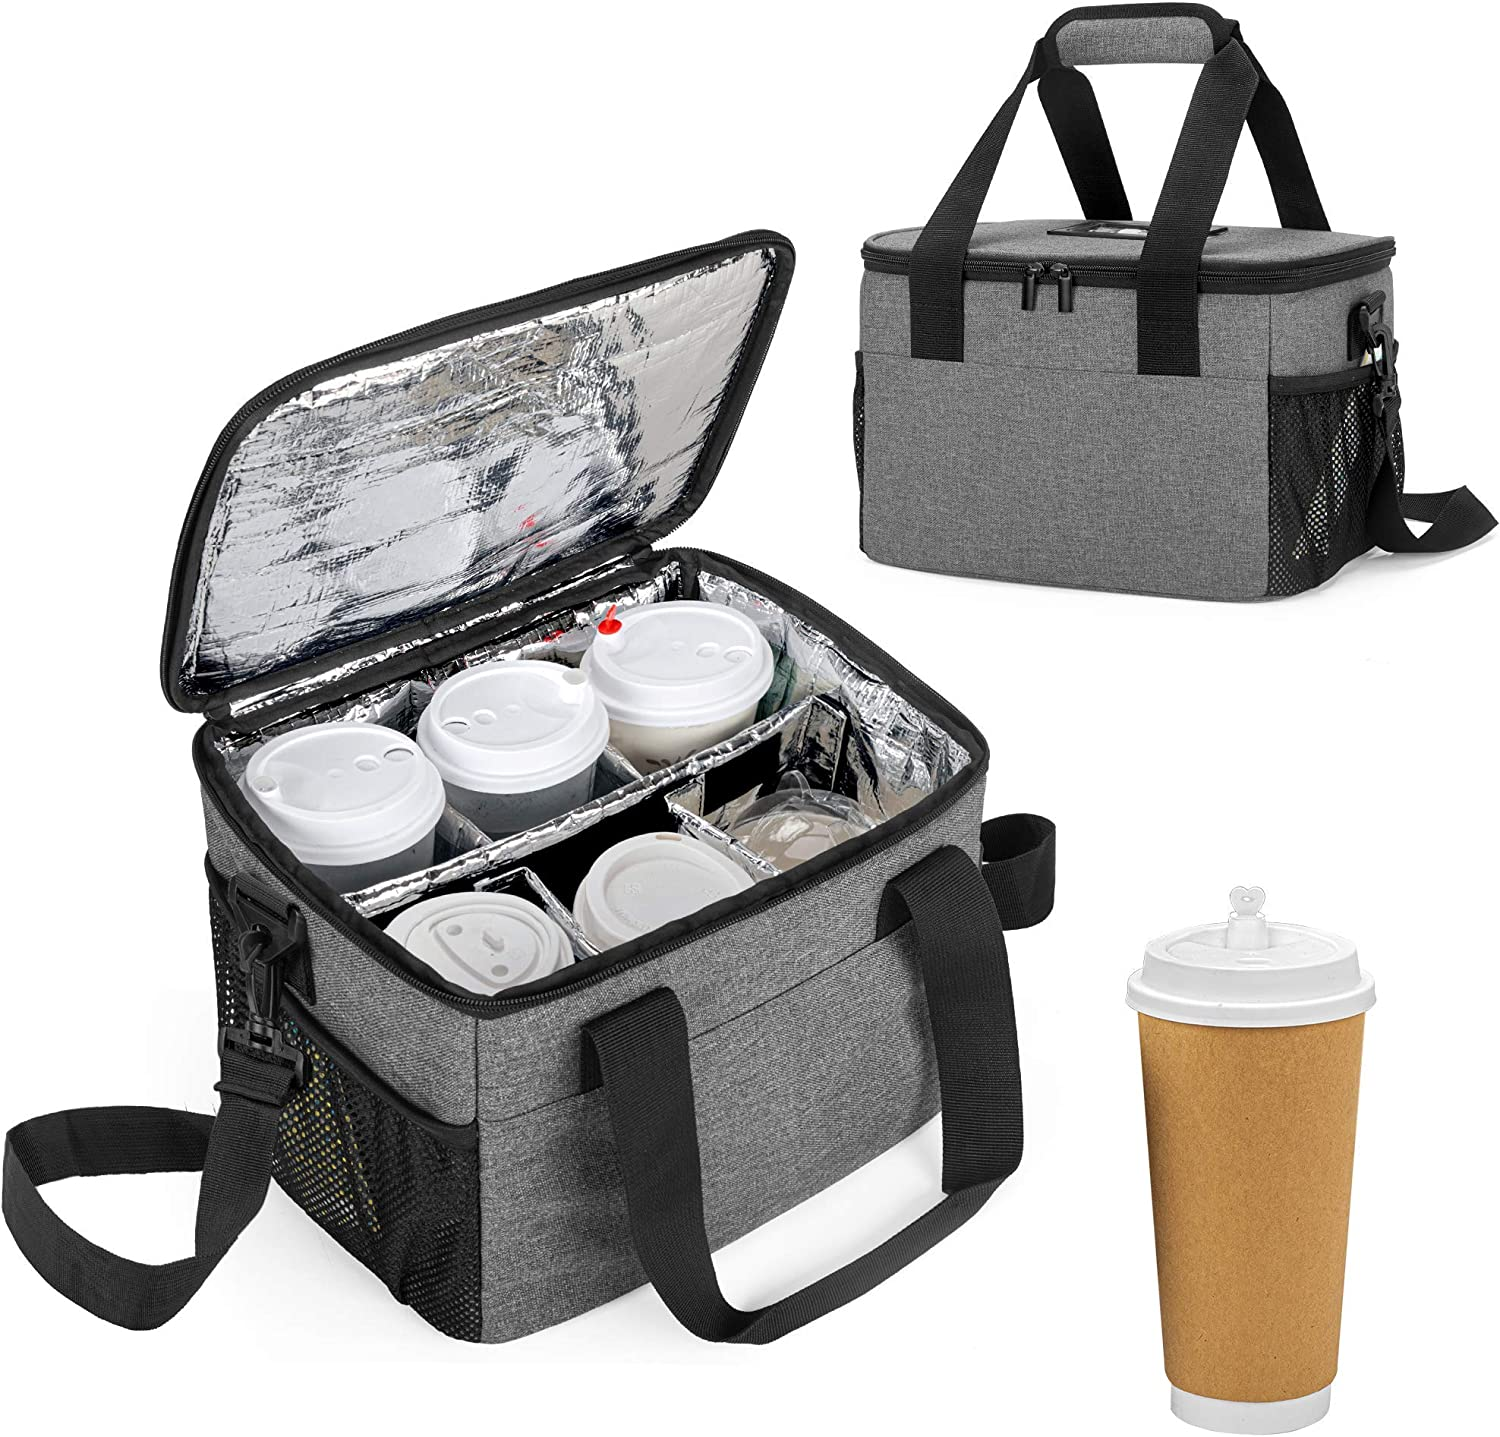 Trunab Reusable 6 Cups Drink Carrier for Delivery Insulated Drink Caddy with Handle and Shoulder Strap, Adjustable Dividers, Beverages Carrier Tote Bag, for Daily Life Takeout, Outdoors, Travel, Grey